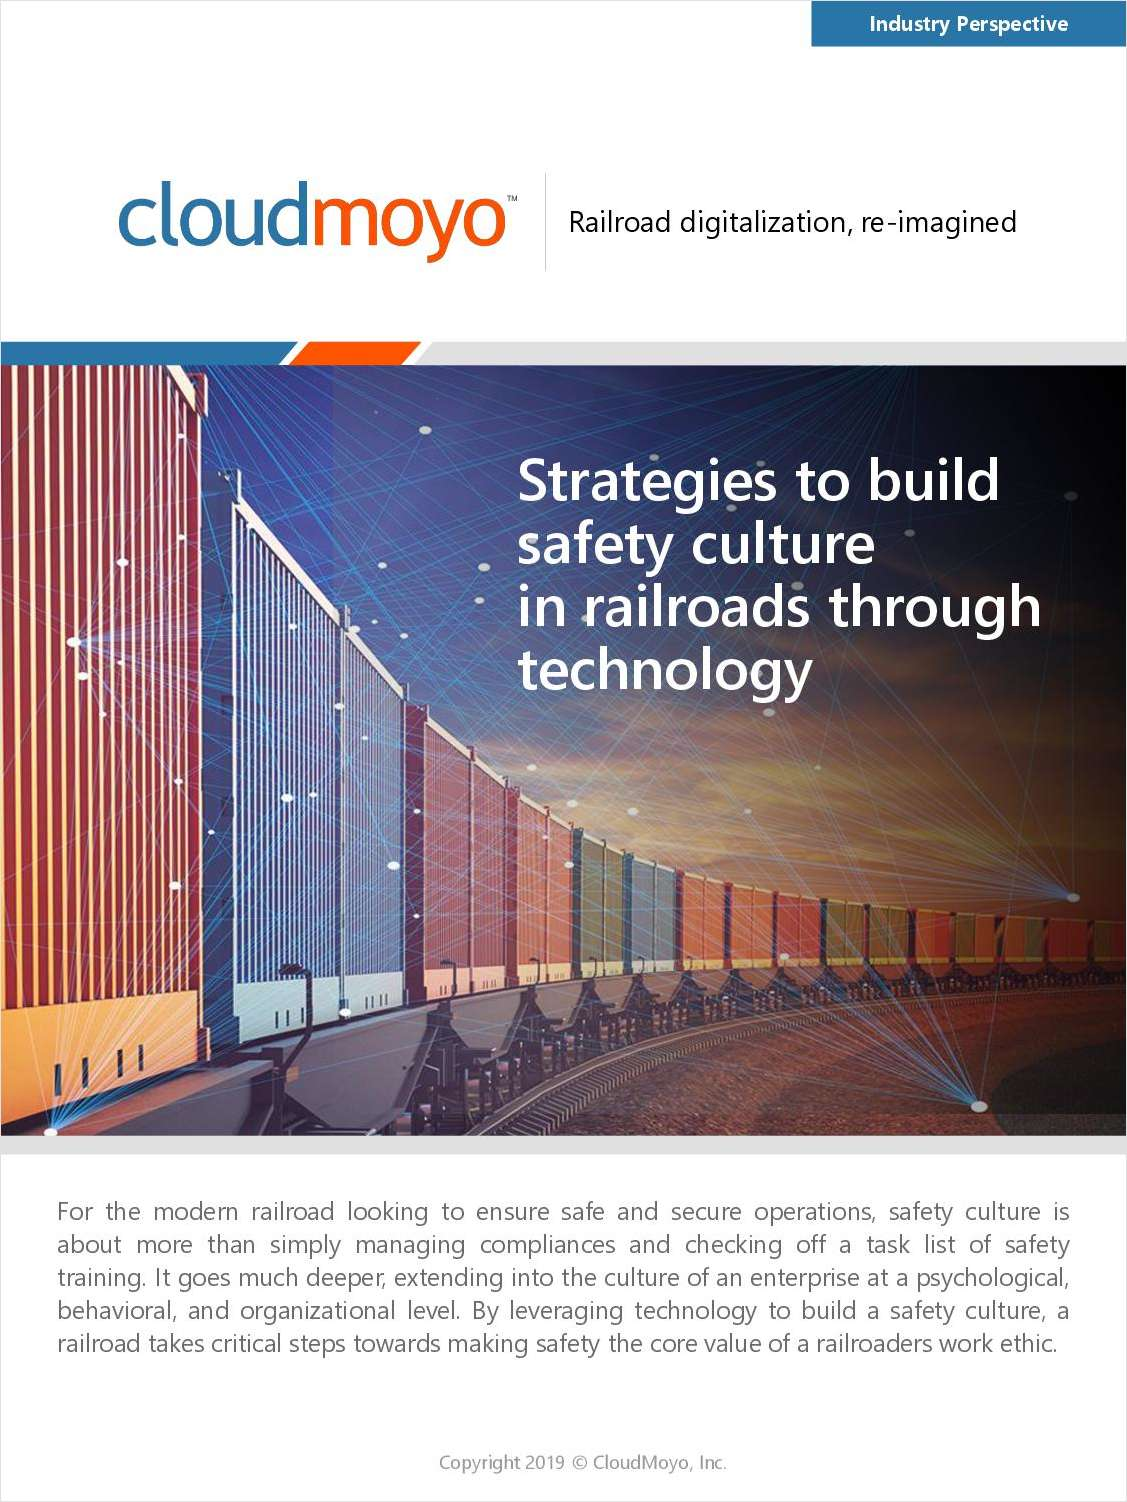 Strategies to Build Safety Culture in Railroads Through Technology